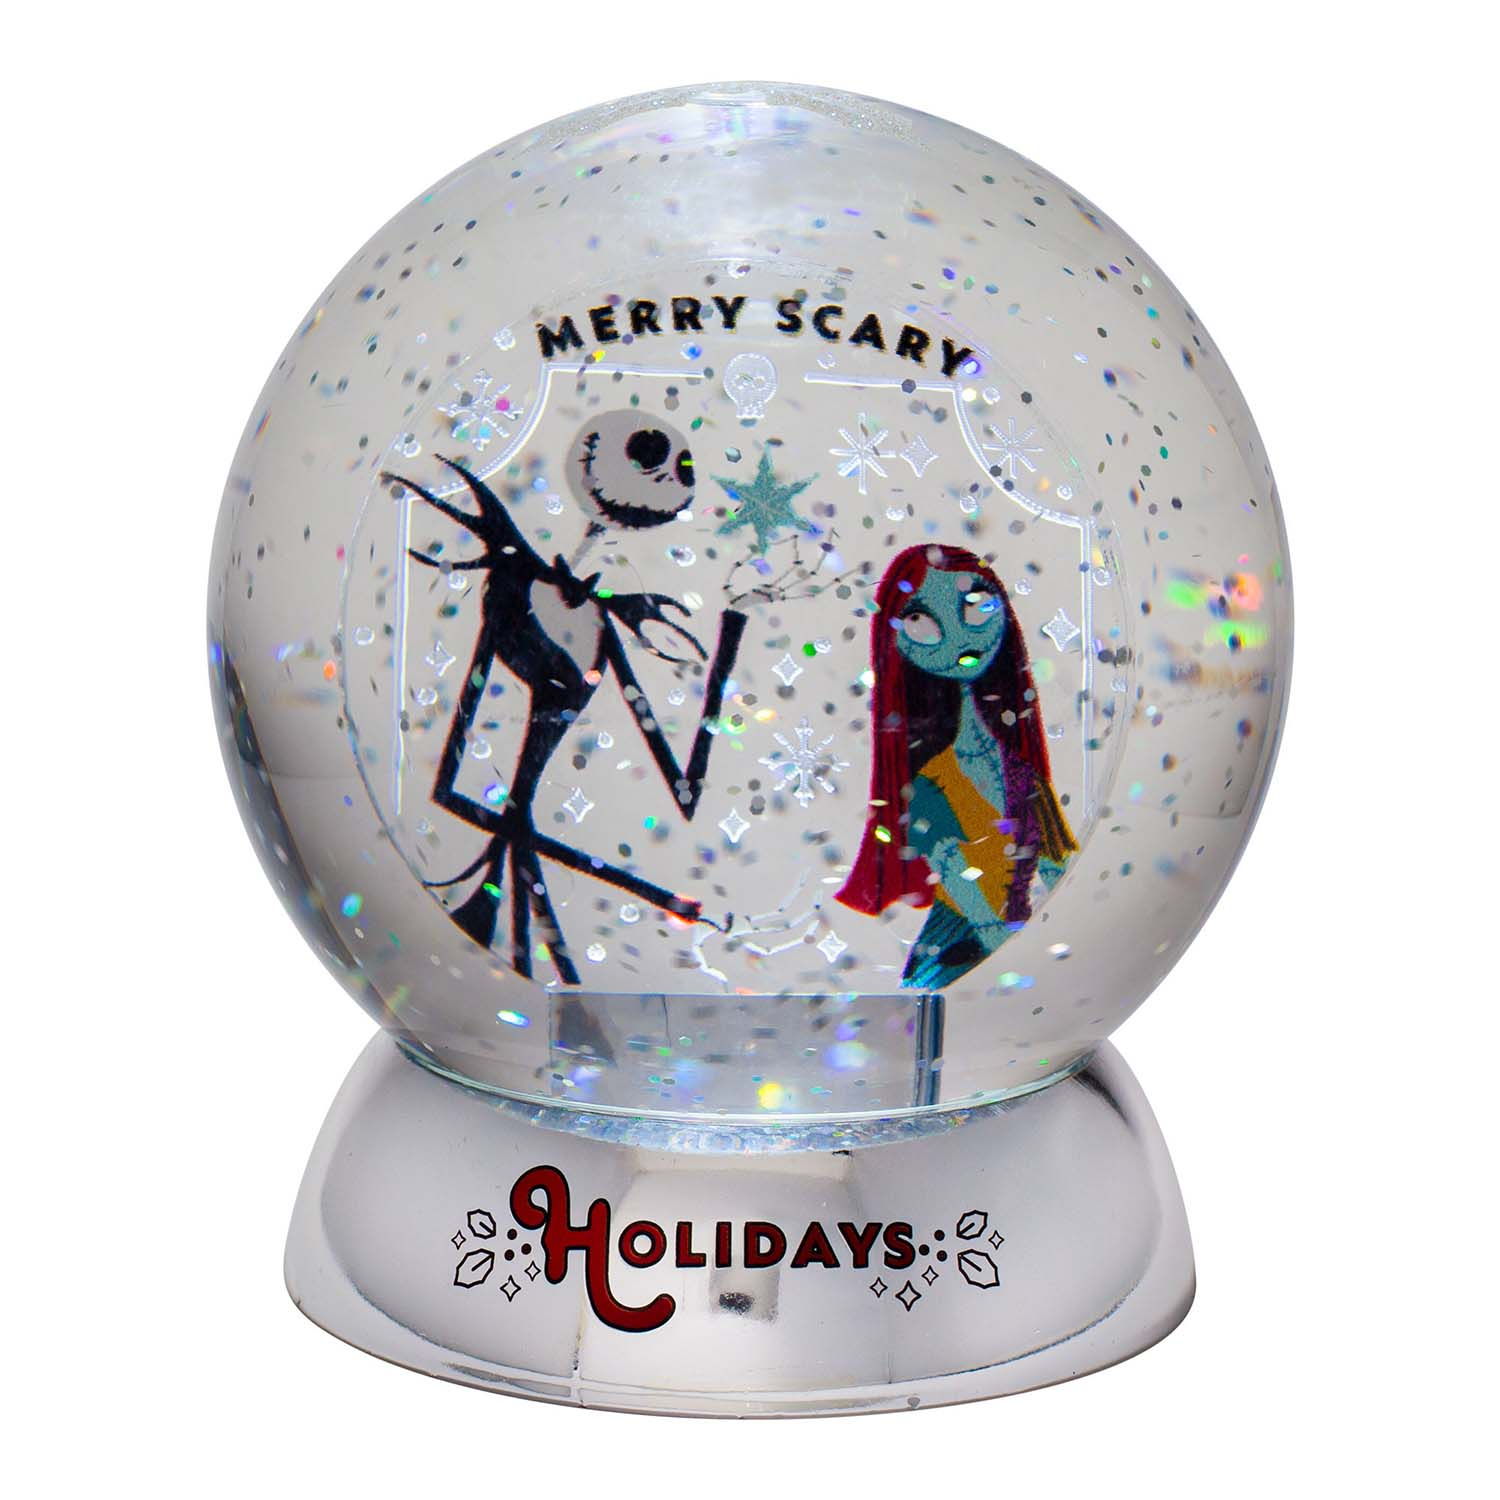 Disney Water Dazzler - Jack and Sally Merry Scary Holidays